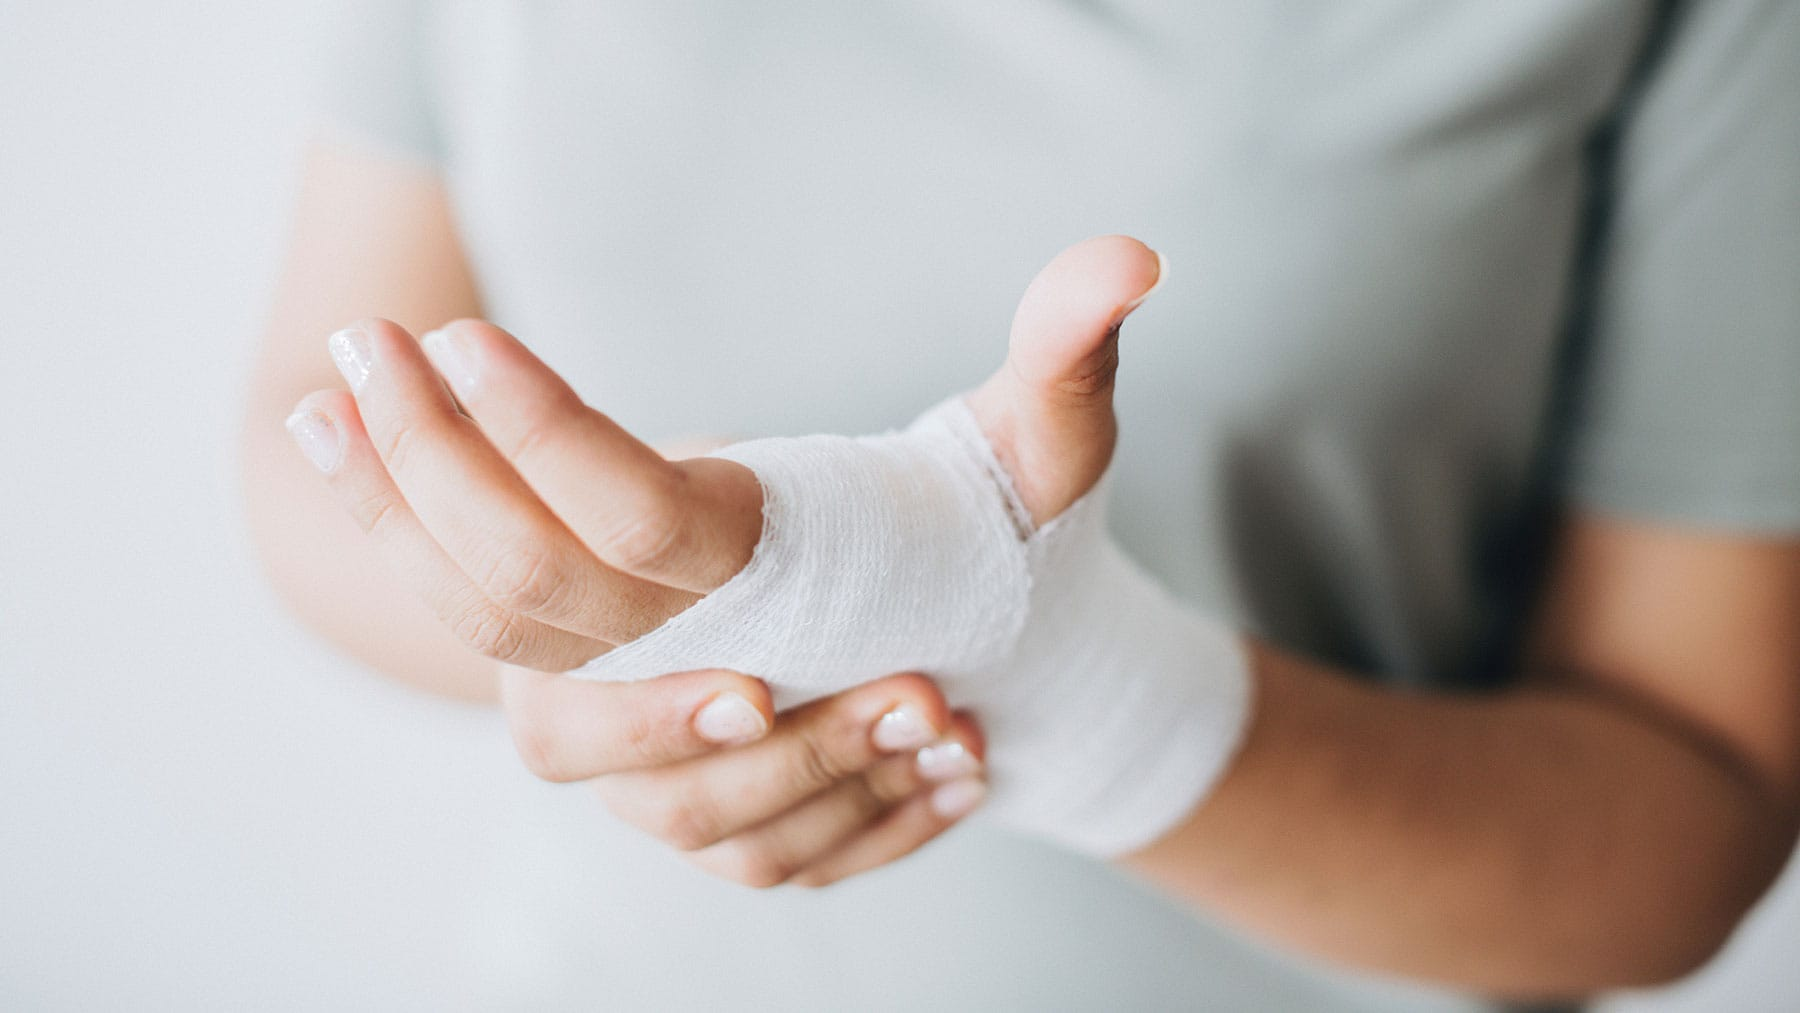 Step by step instructions to File a Wisconsin Personal Injury Claim